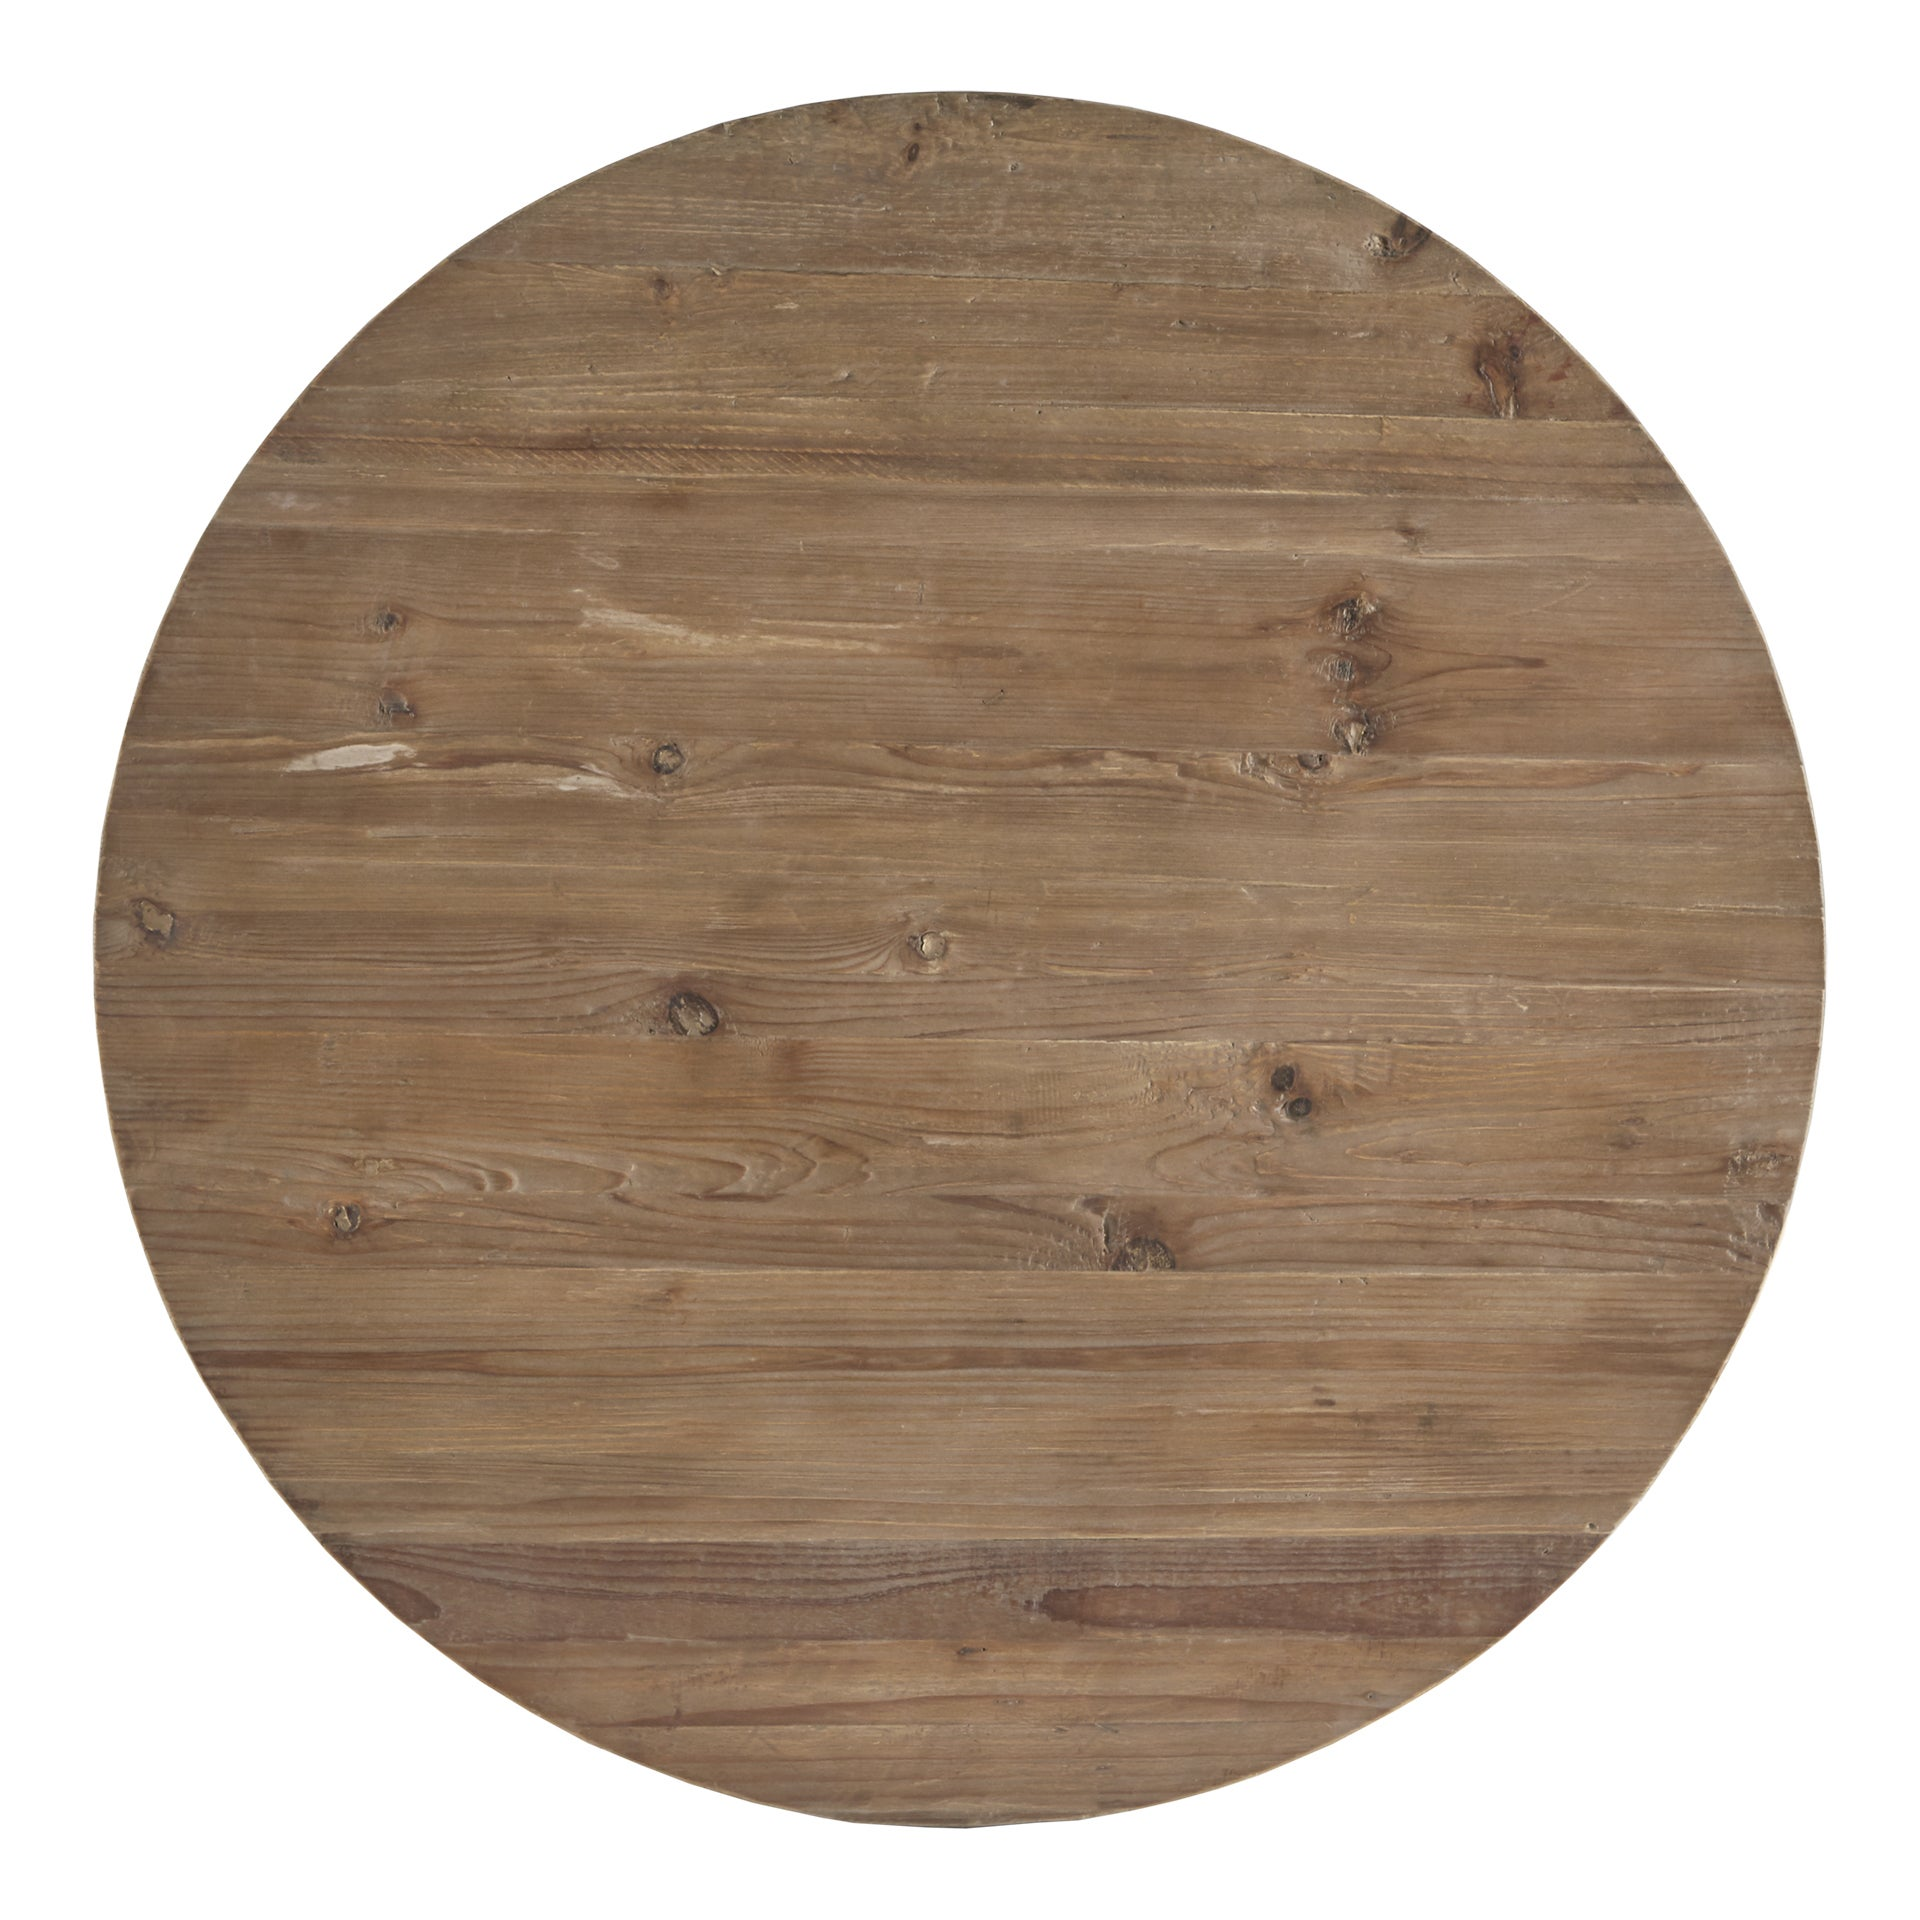 Hatteras Drum Reclaimed Woodblock Barrel Coffee Table by iNSPIRE Q Artisan  - Free Shipping Today - Overstock.com - 18916768